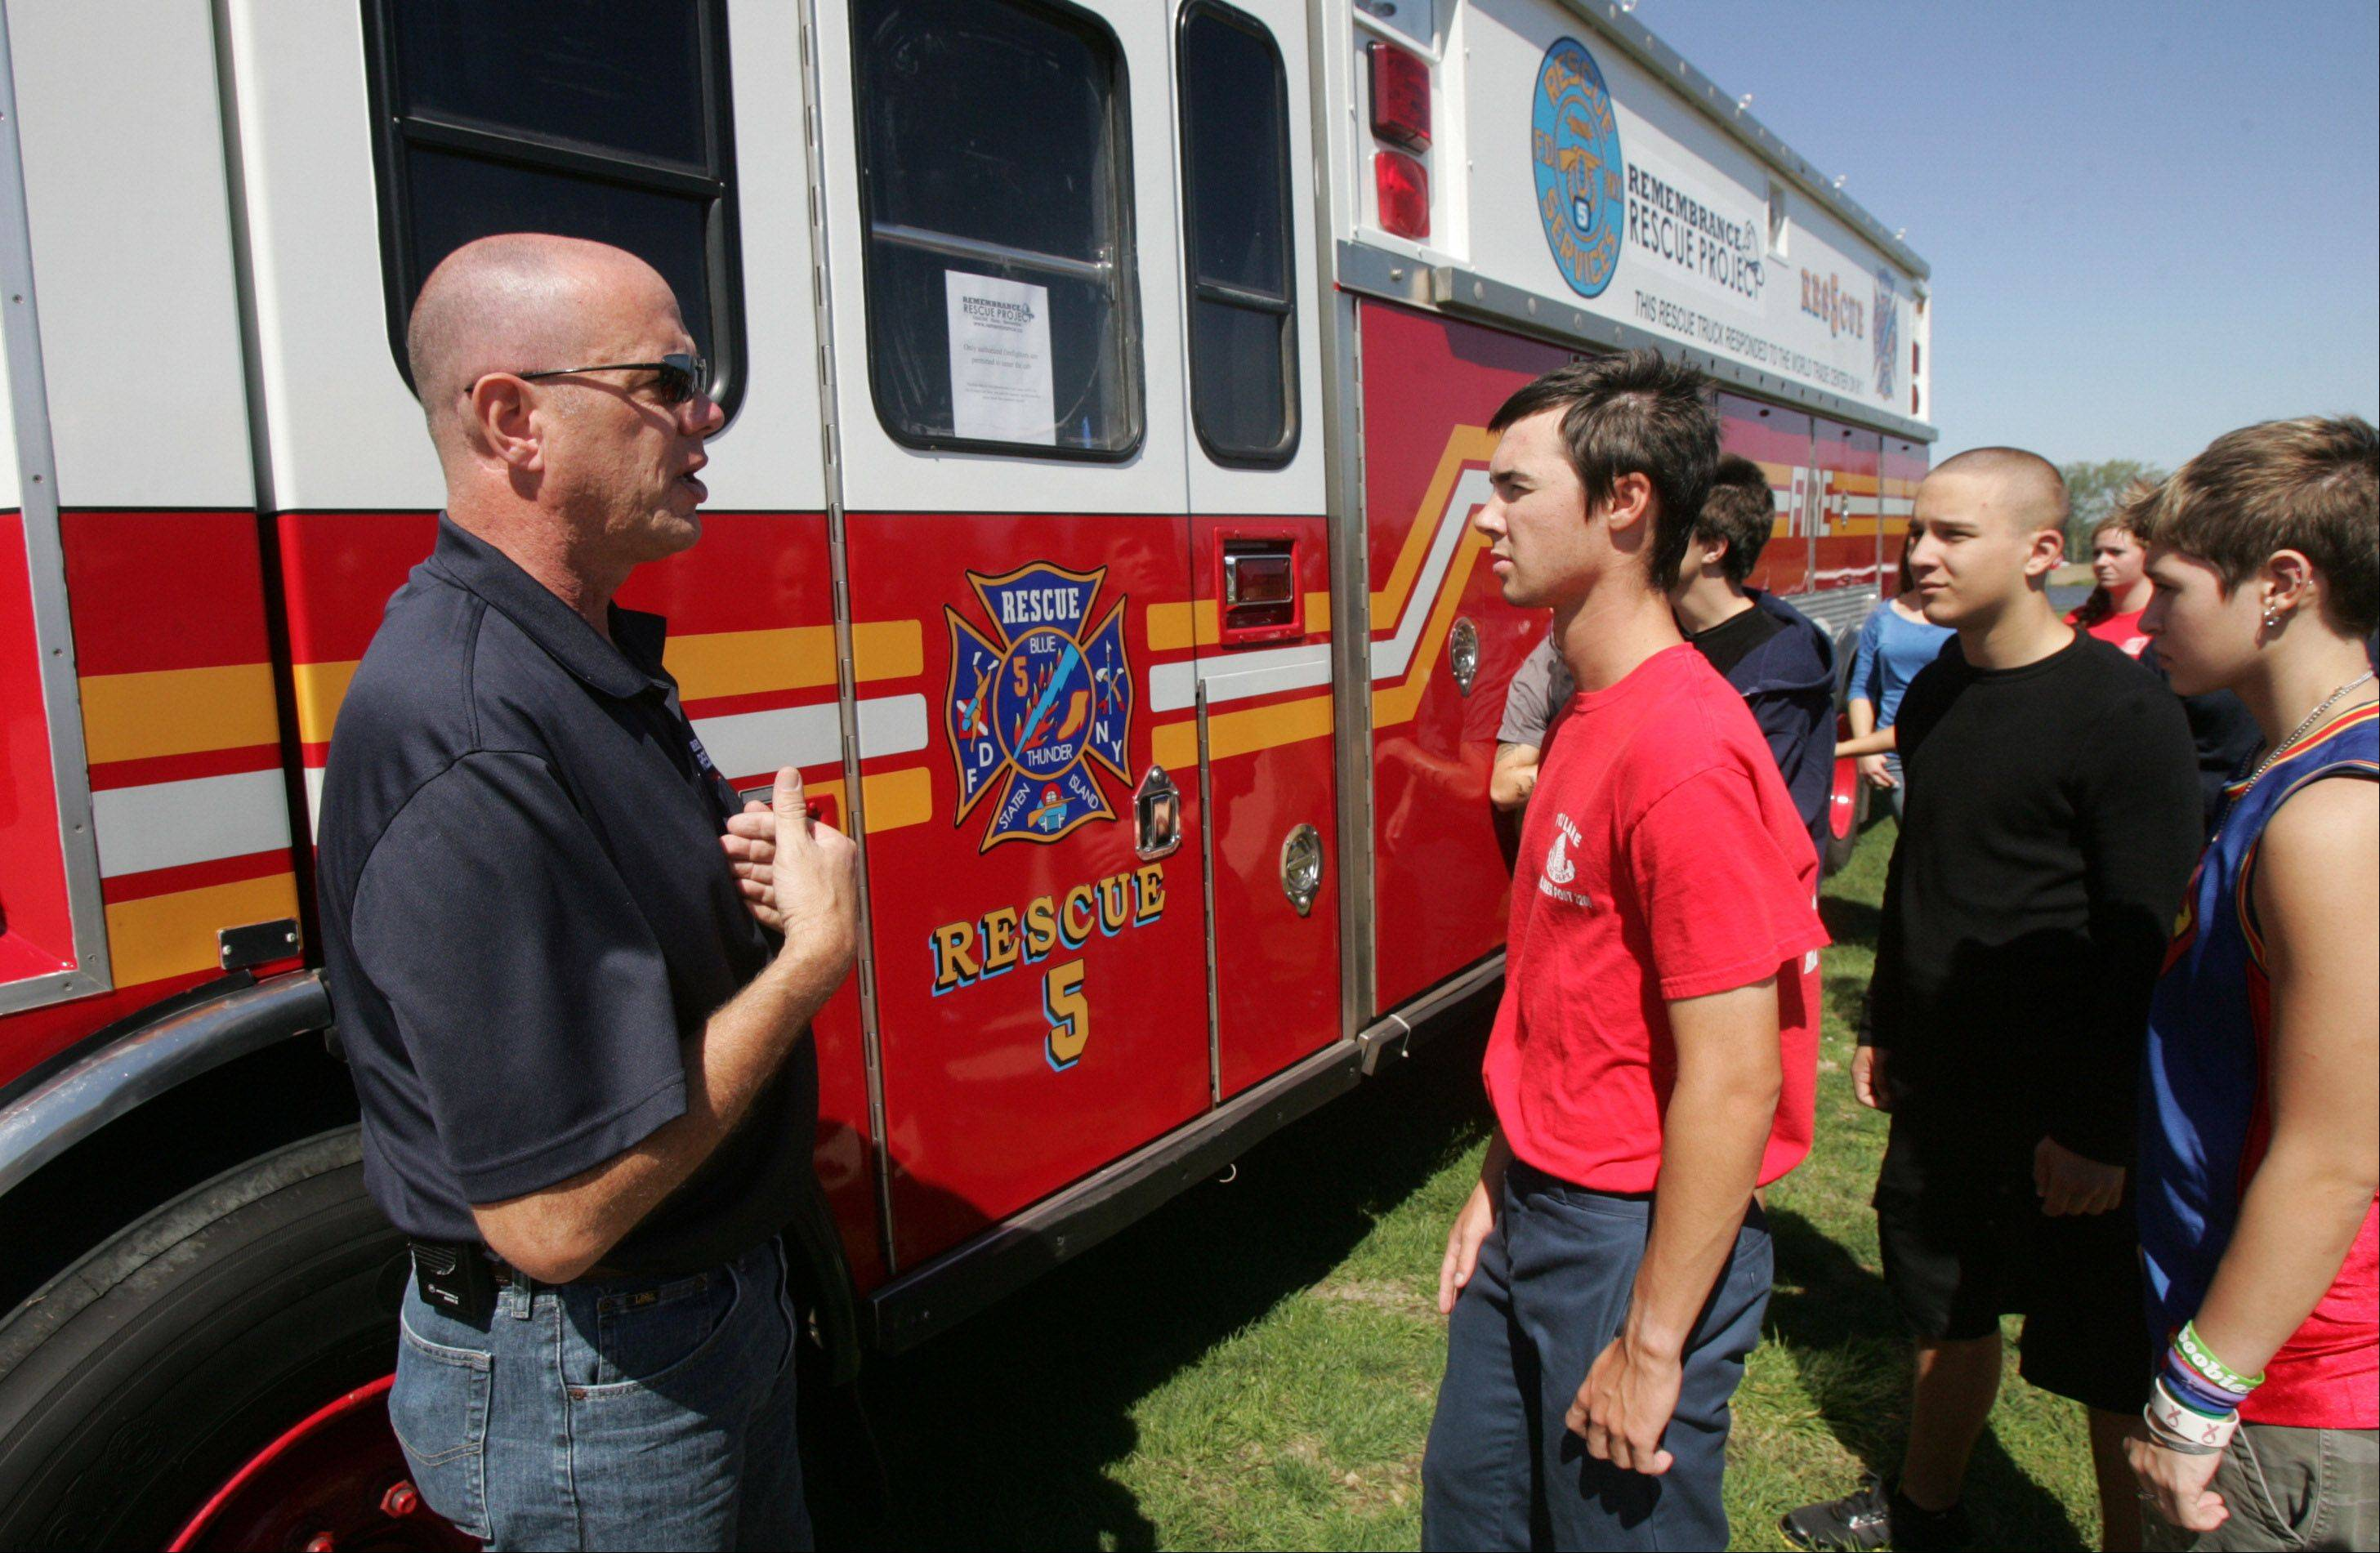 Scott Vaughn of Remembrance Rescue Project talks to a fire service class about the New York Fire Department Rescue 5 engine on display during the 9/11 Ceremony Tuesday at the Lake County High Schools Technology Campus in Grayslake.